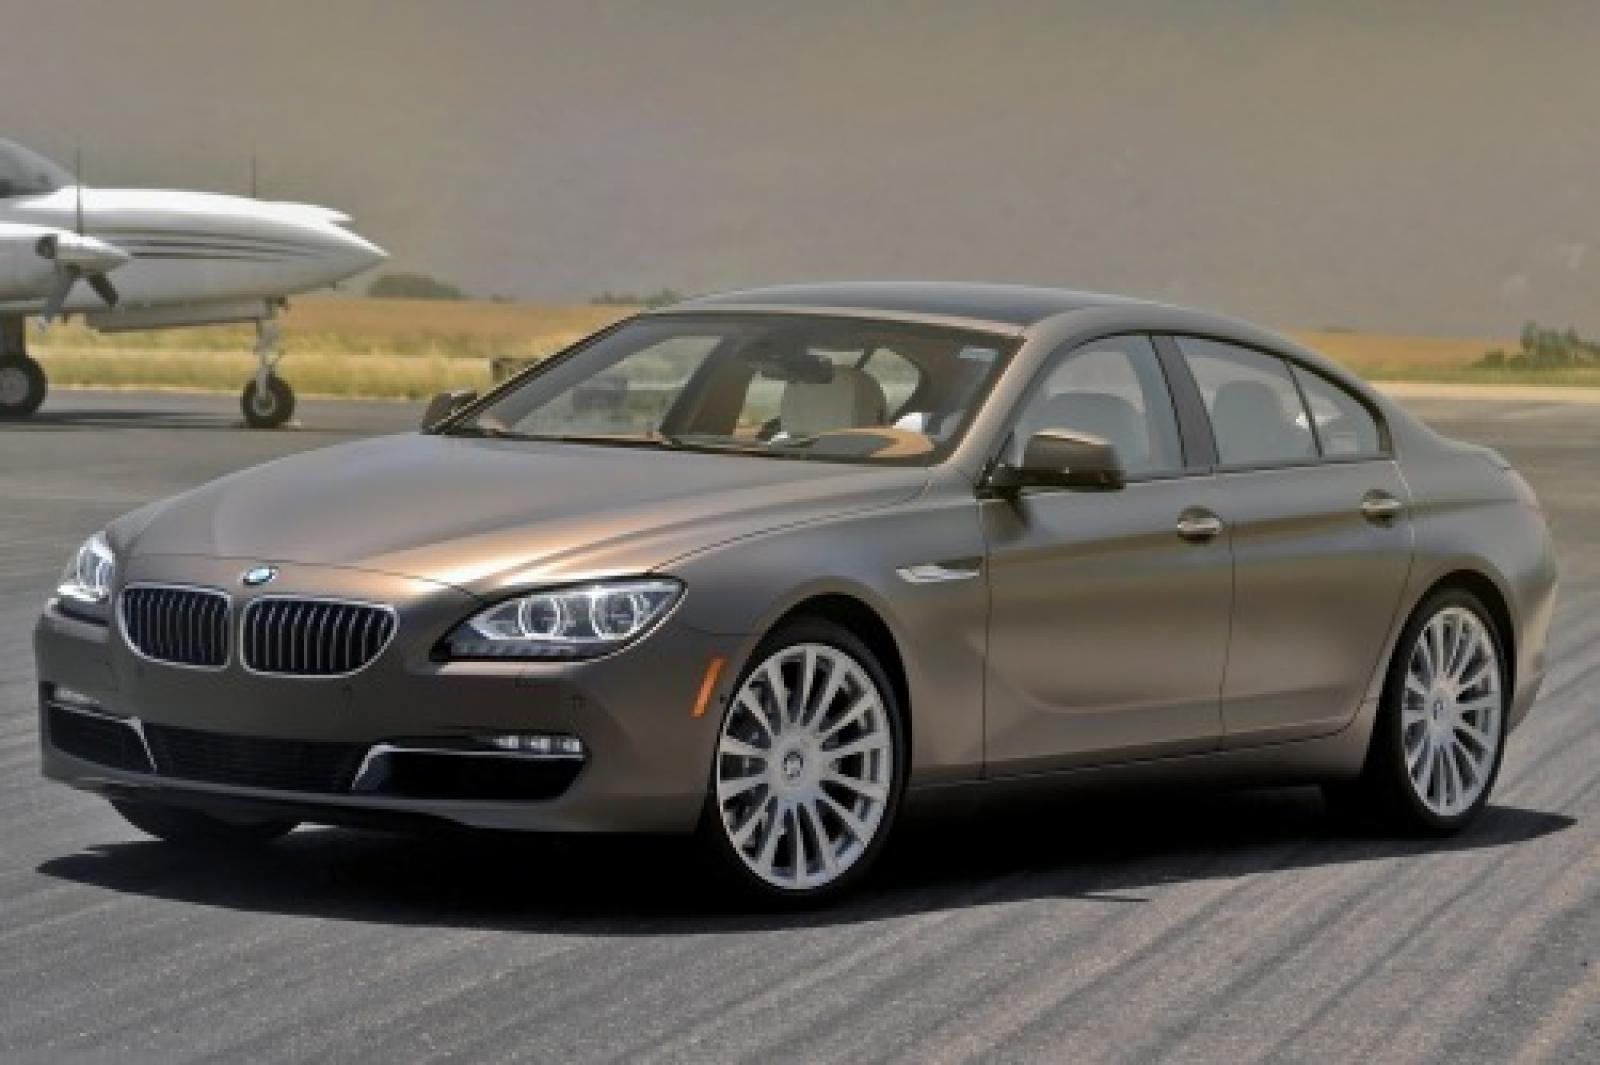 2014 bmw 6 series - photo #34